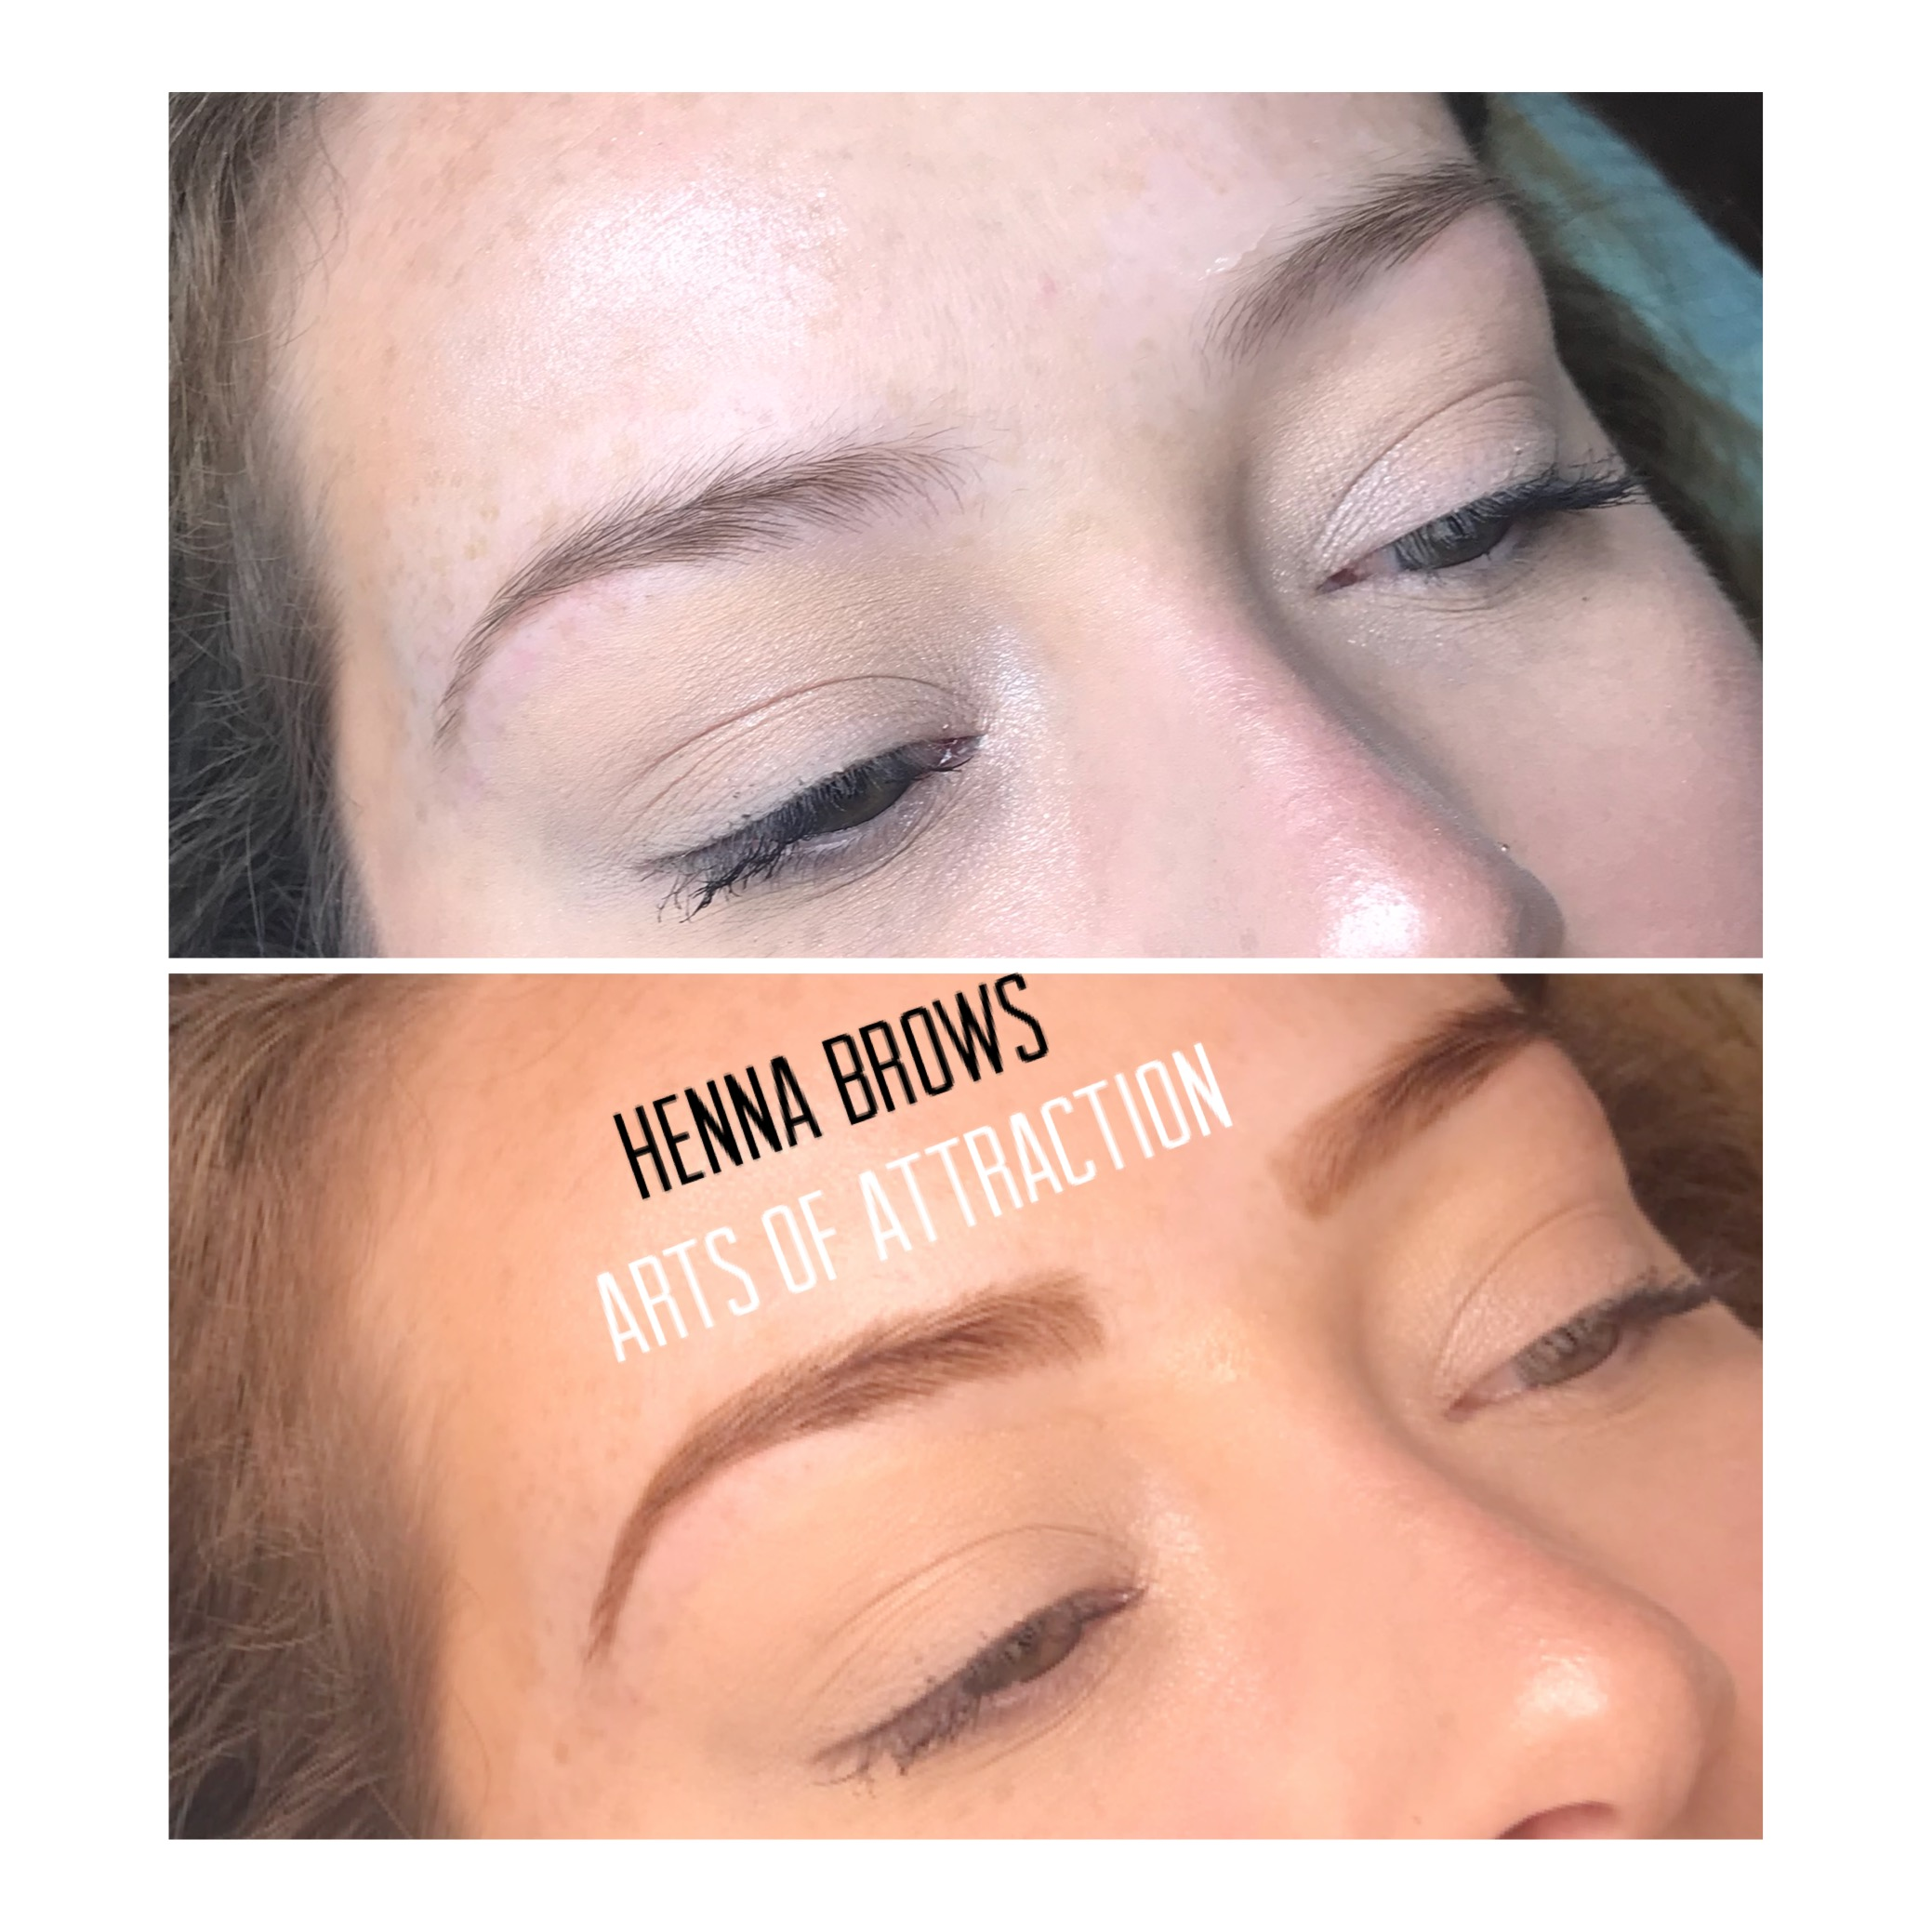 Henna Eyebrows - The Hottest Trend!